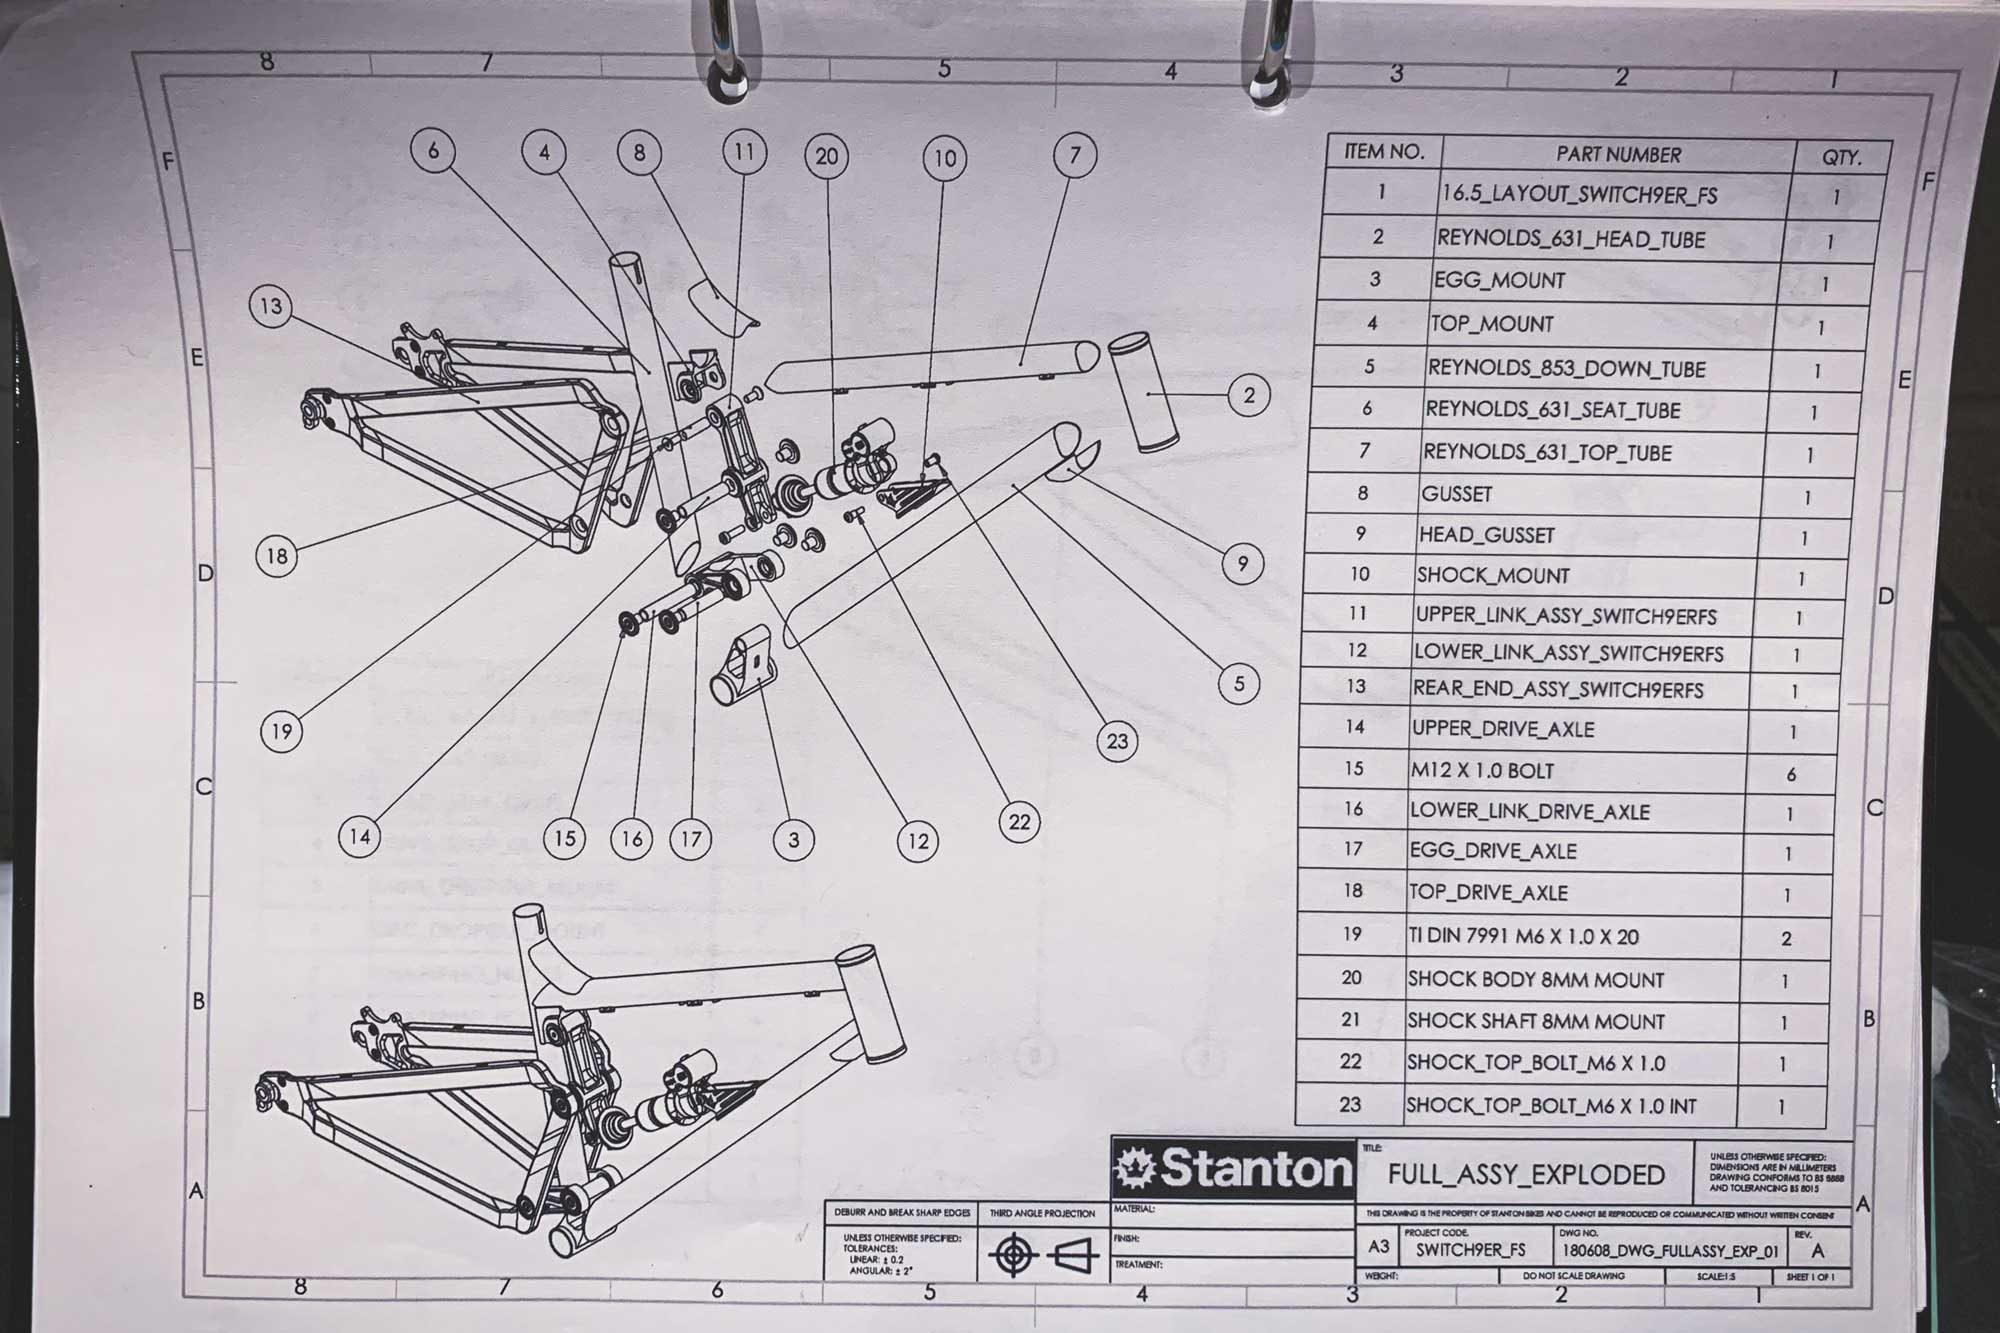 Can See Where He She Is Sitting Here Is The Schematic Diagram Of The